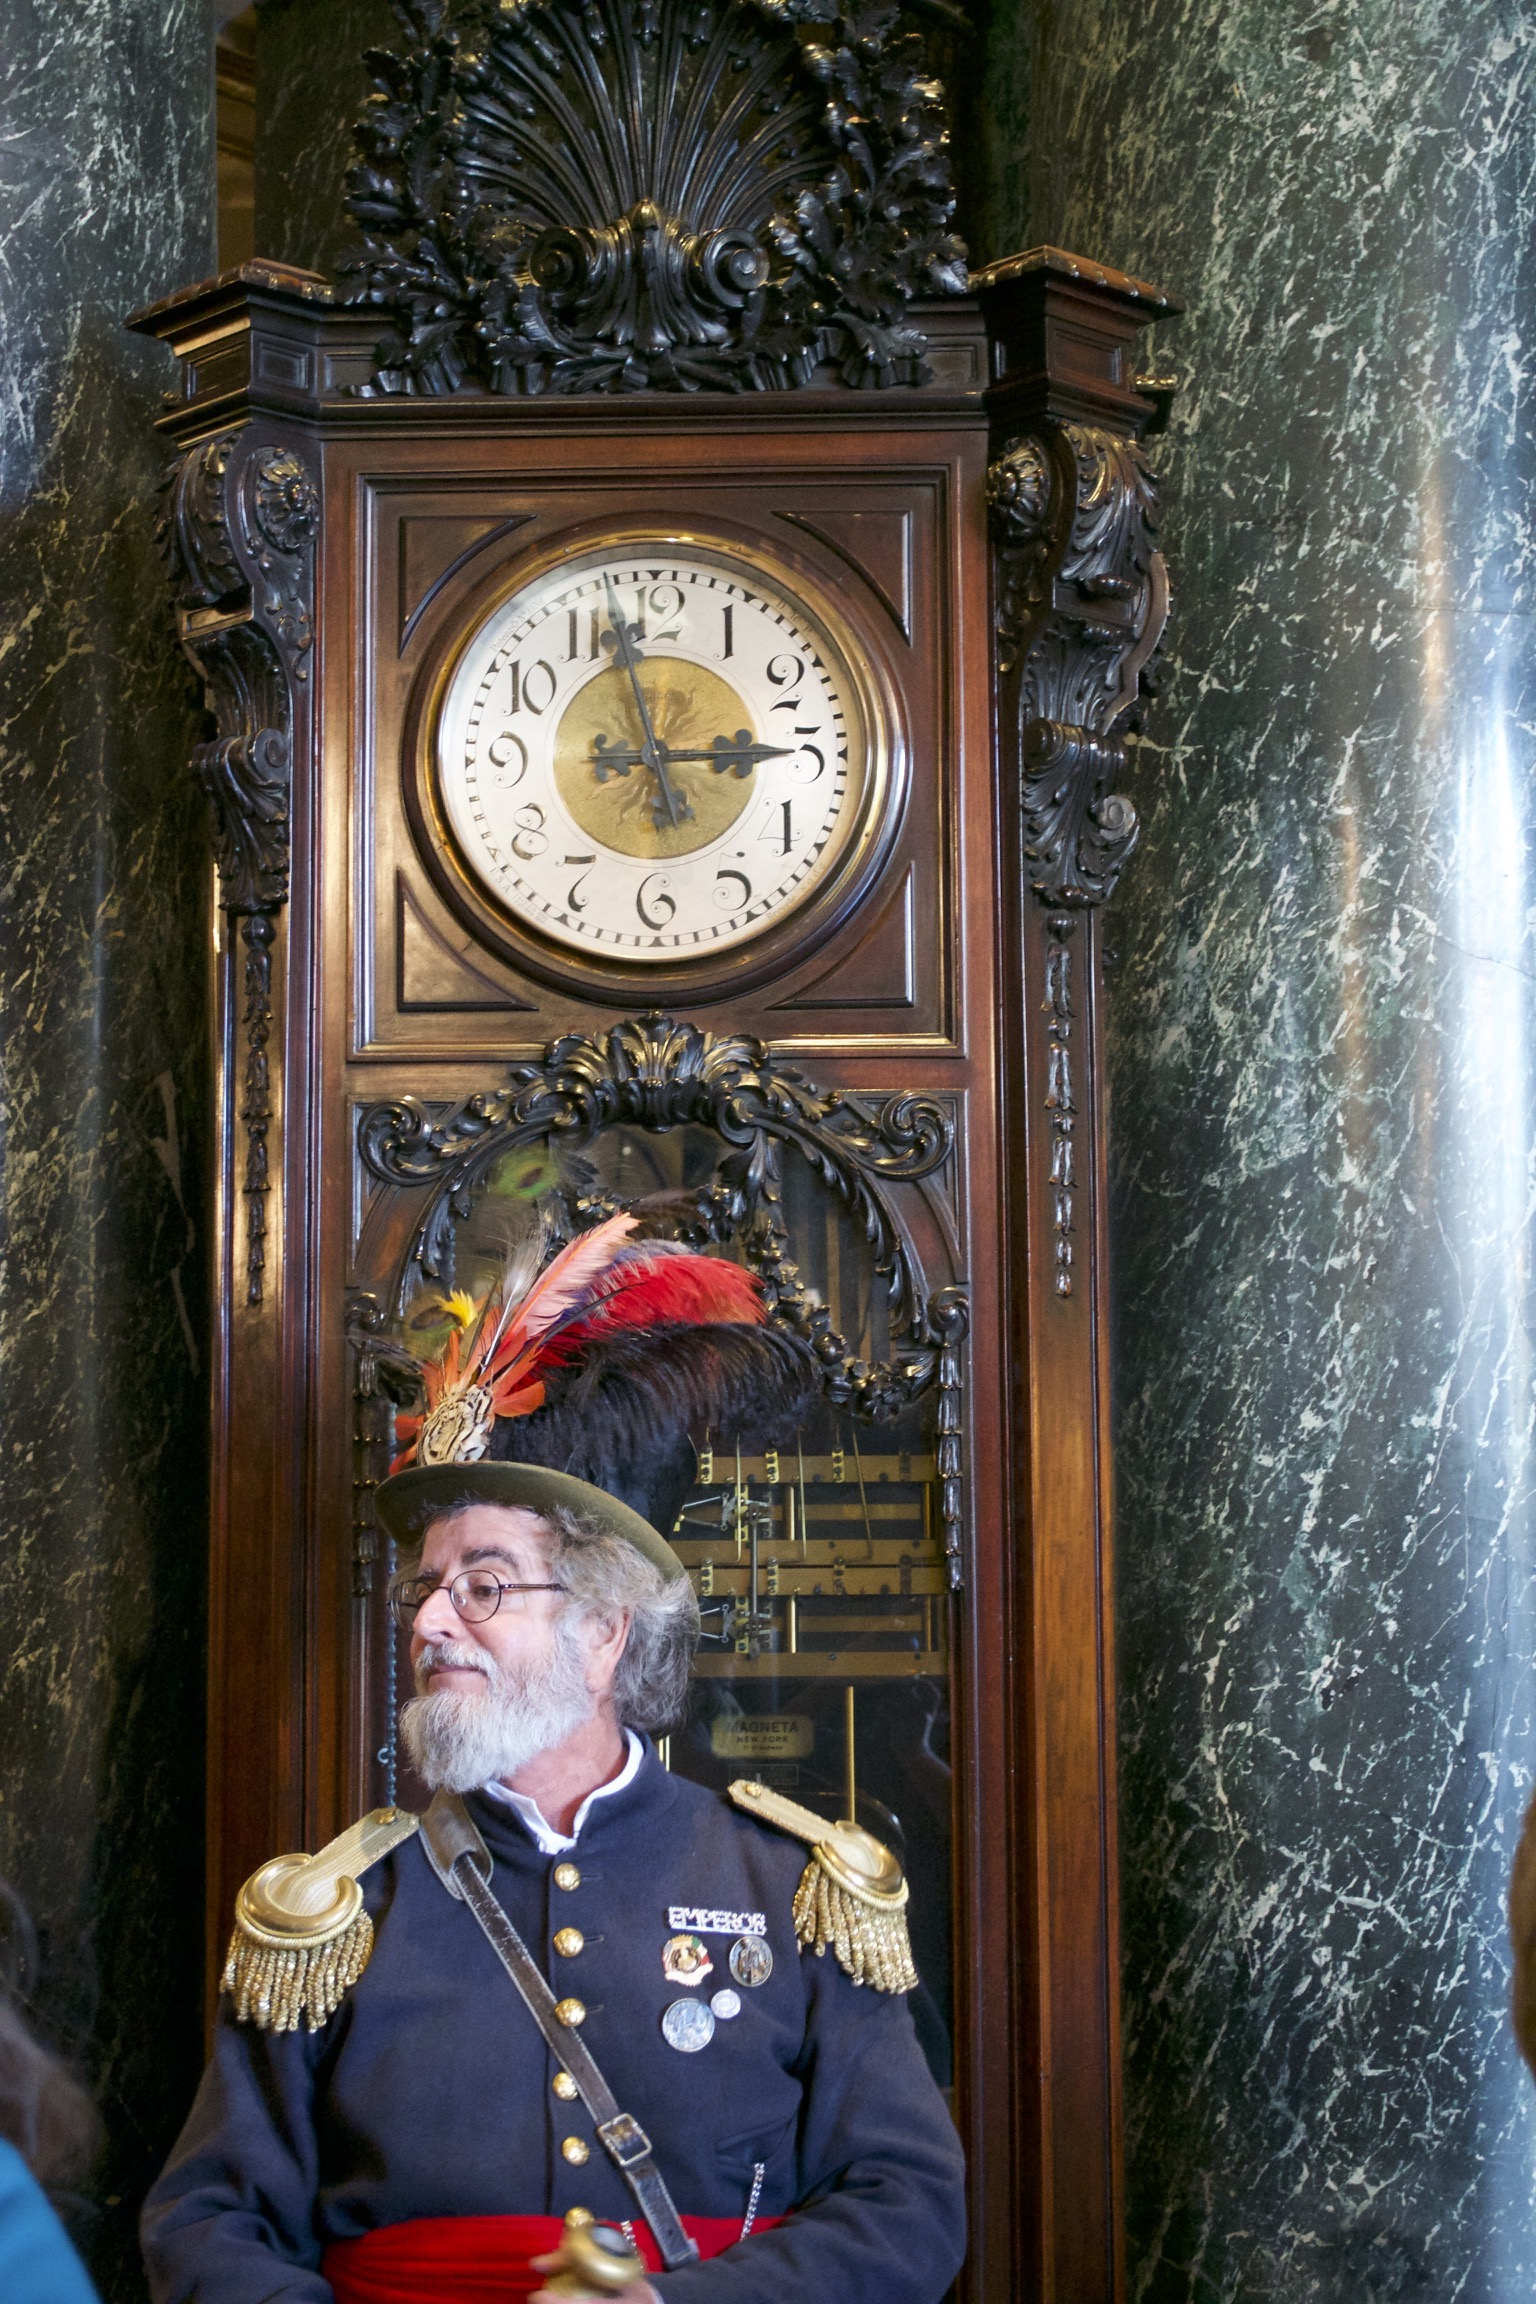 A man in a navy blue officer's jacket with gold epaulets, a red cumberbund, and a feathered top hat stands in front of a huge grandfather clock.